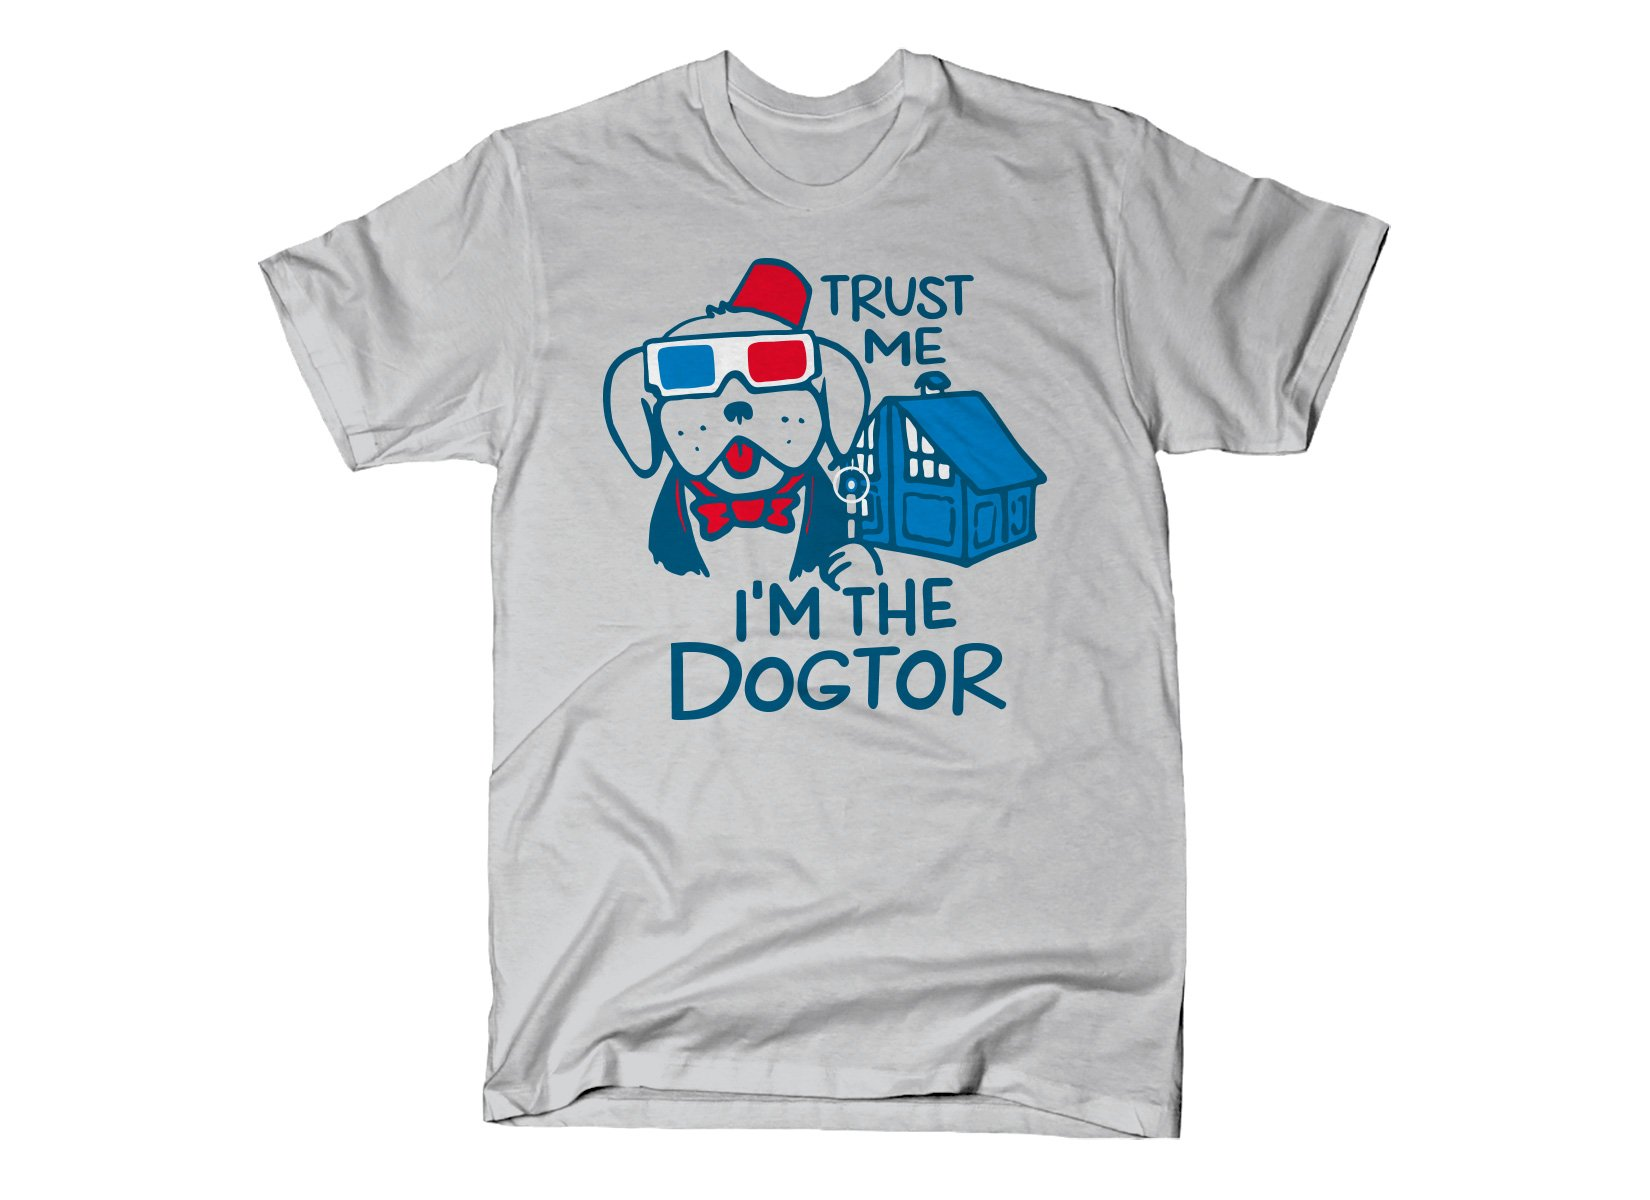 Trust Me, I'm The Dogtor on Mens T-Shirt